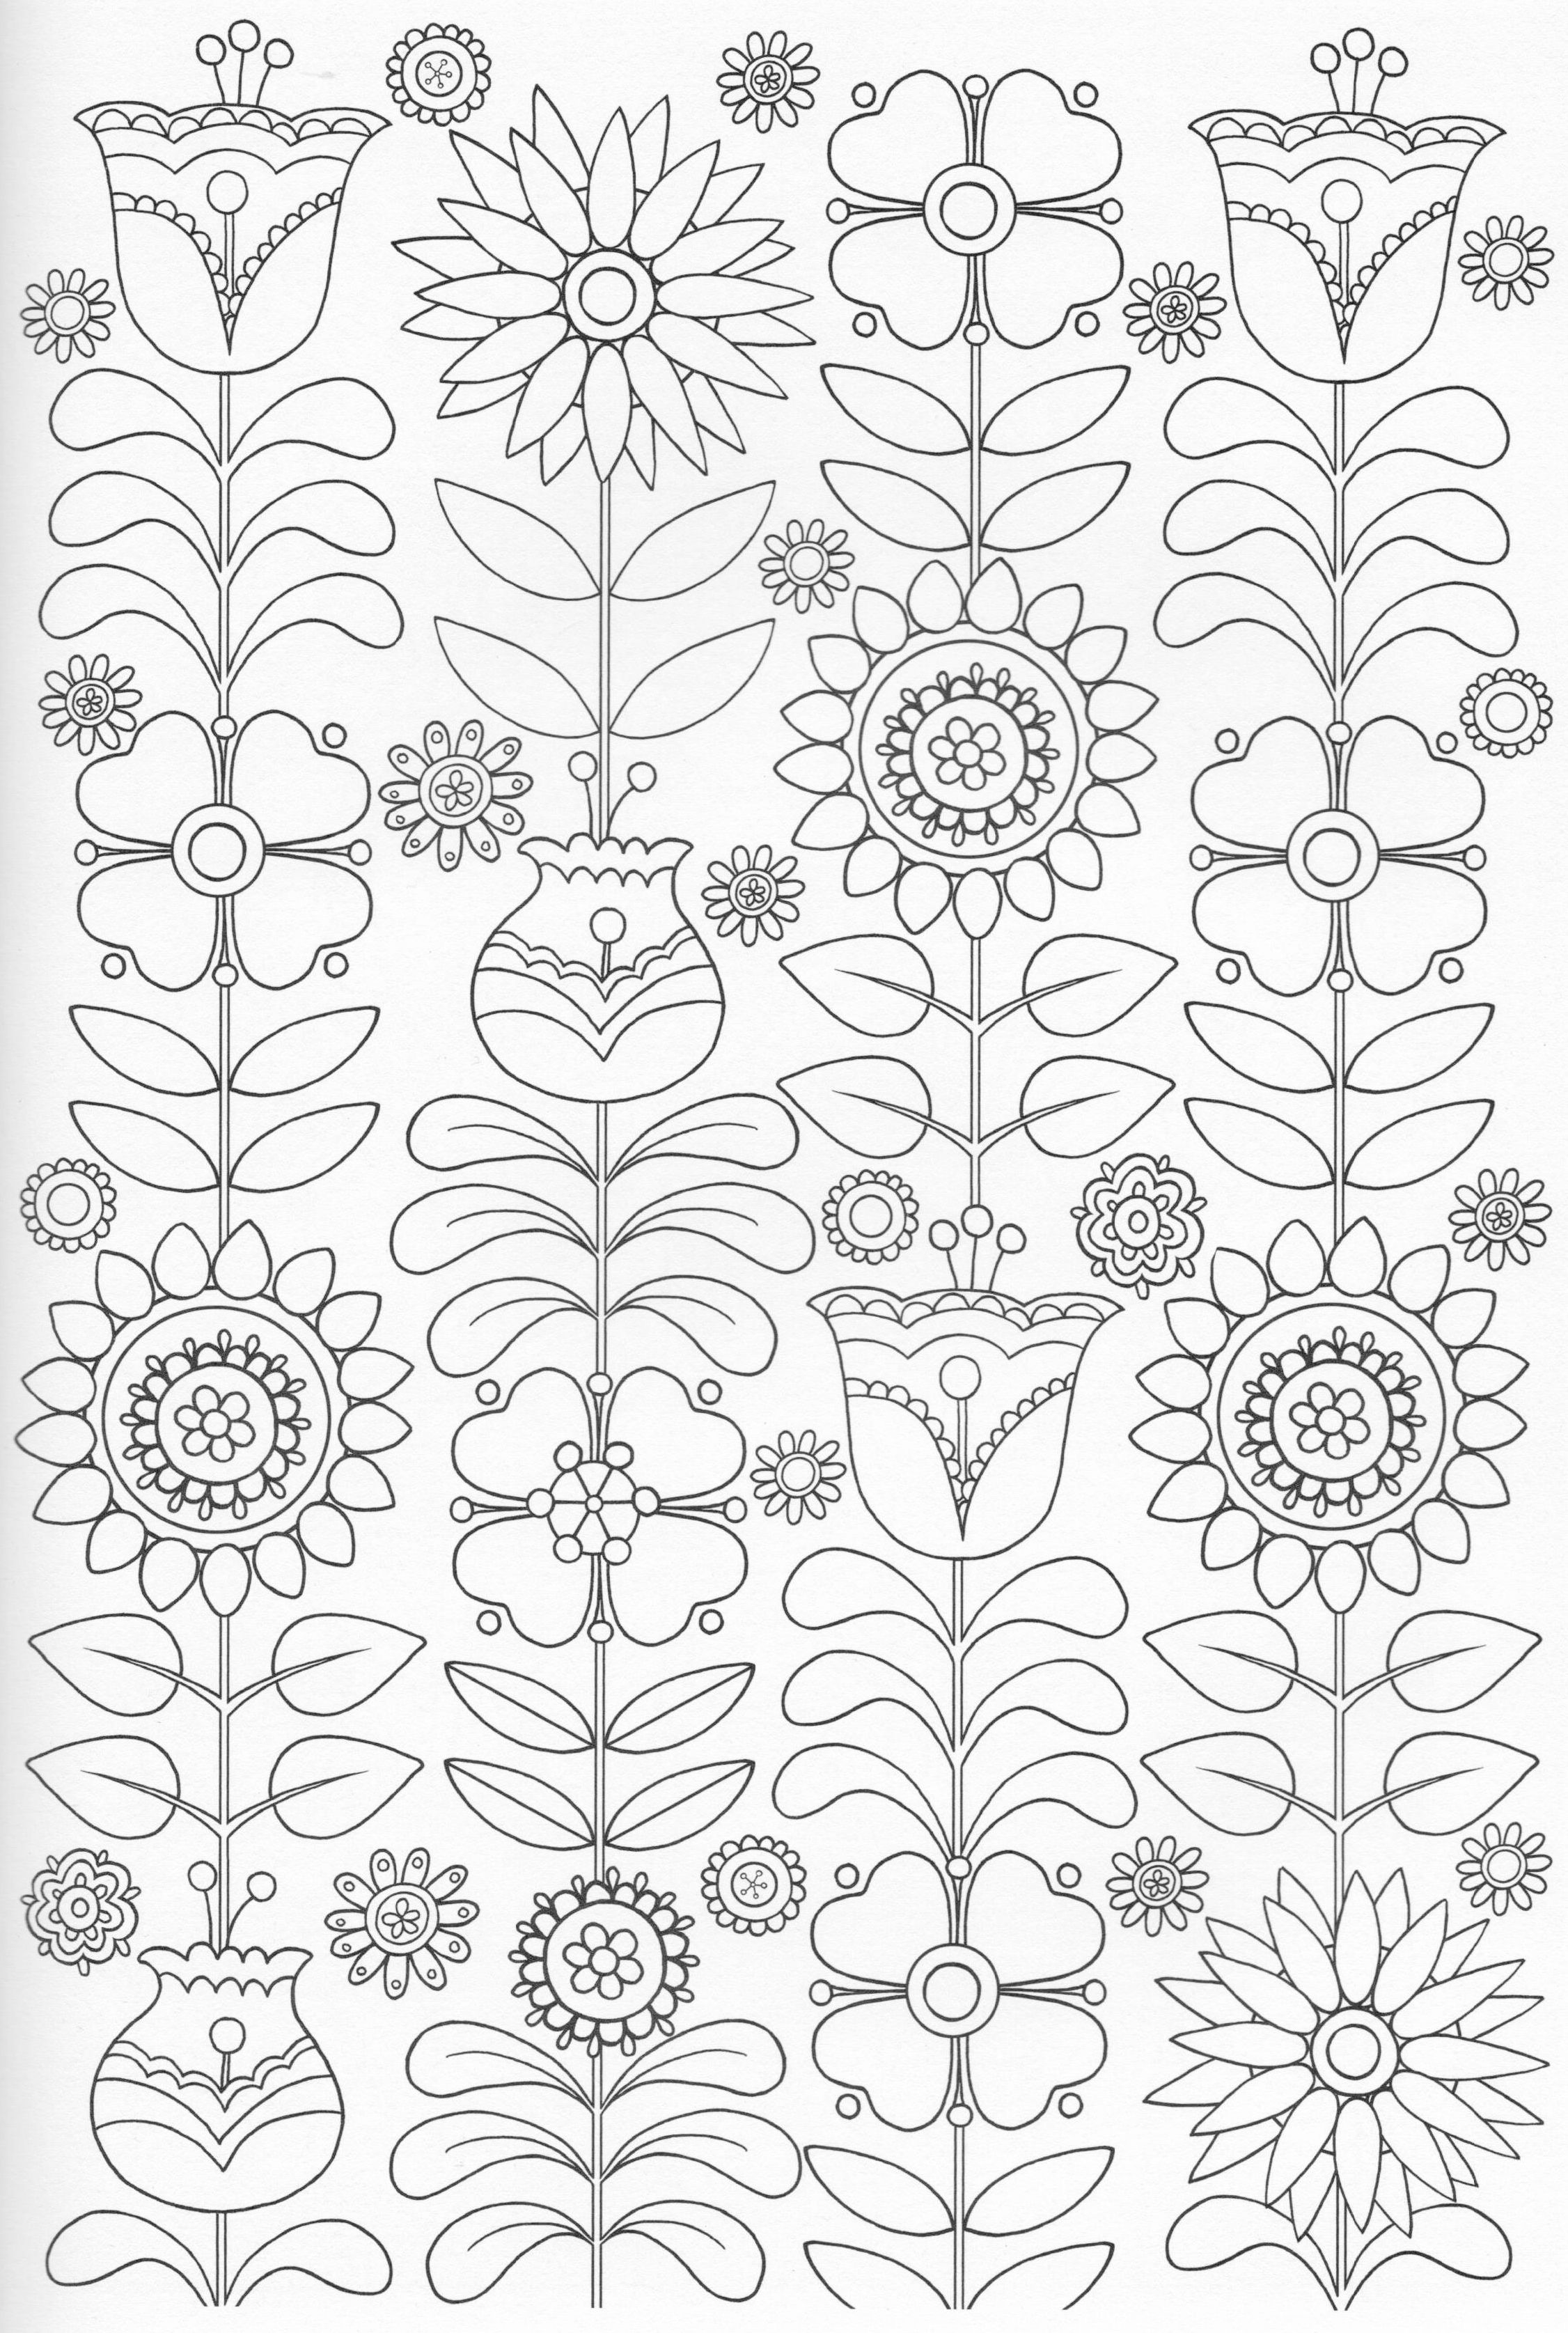 Scandinavian Coloring Book Pg 47 | coloring | Pinterest | Bordado ...